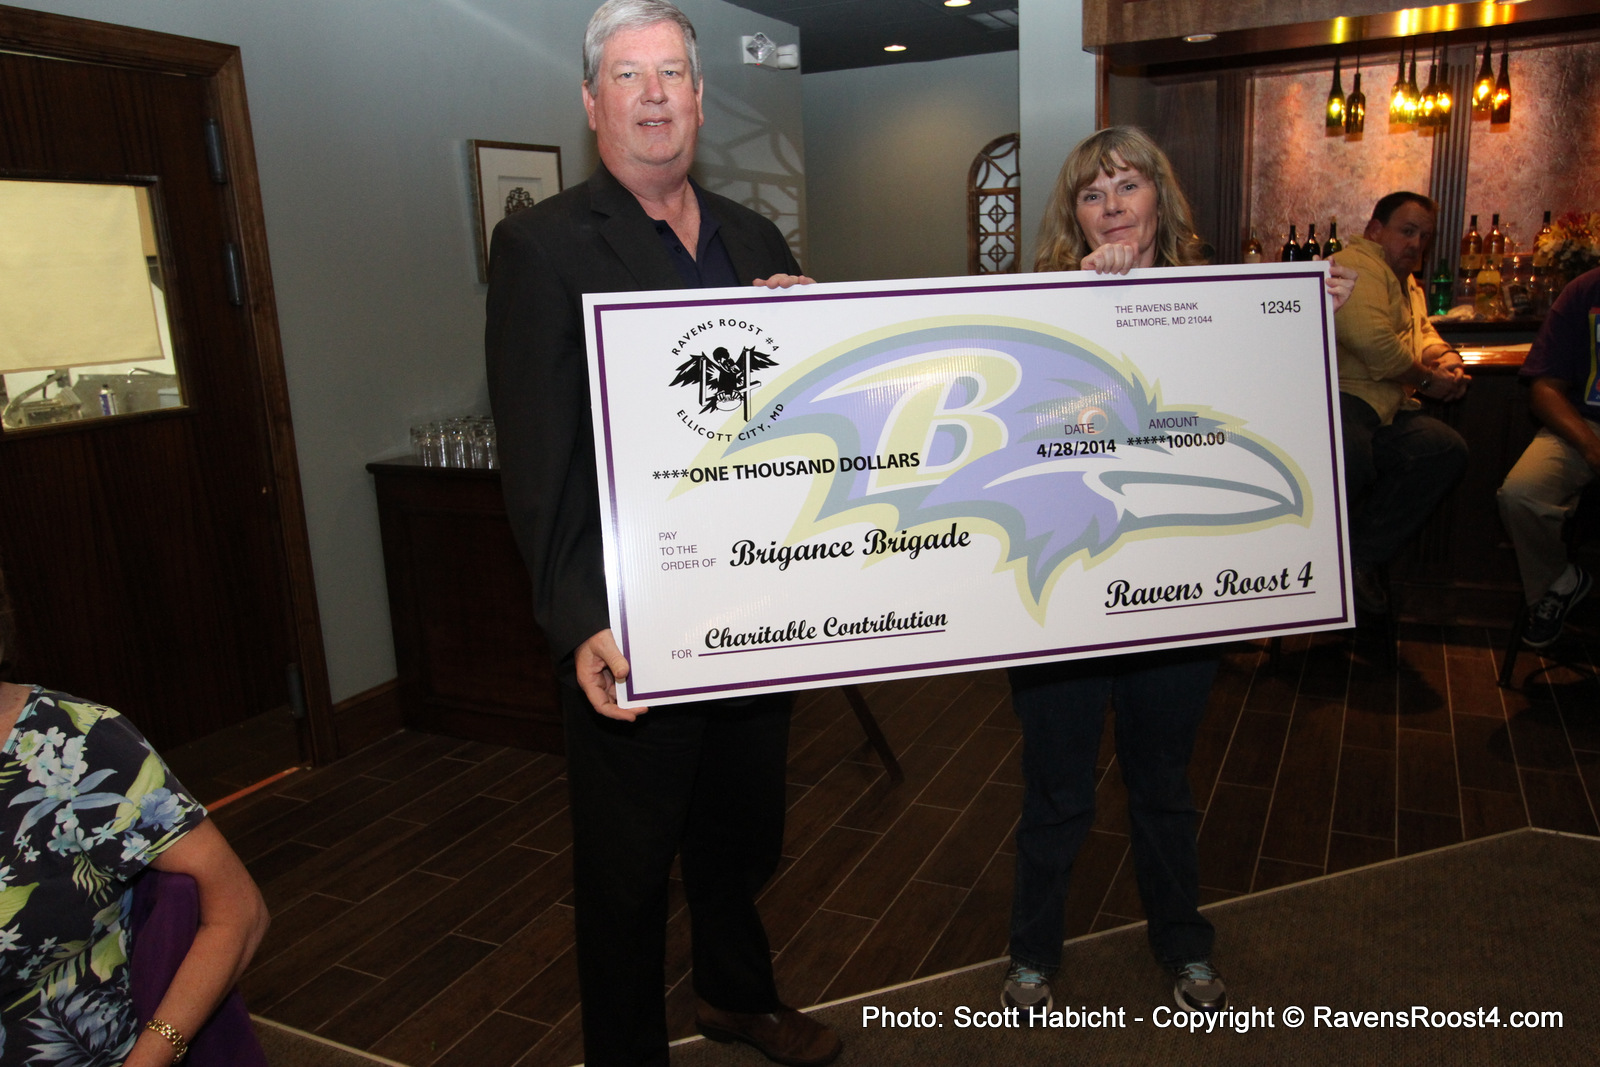 Ravens Roost #4 Donates to Two Charities